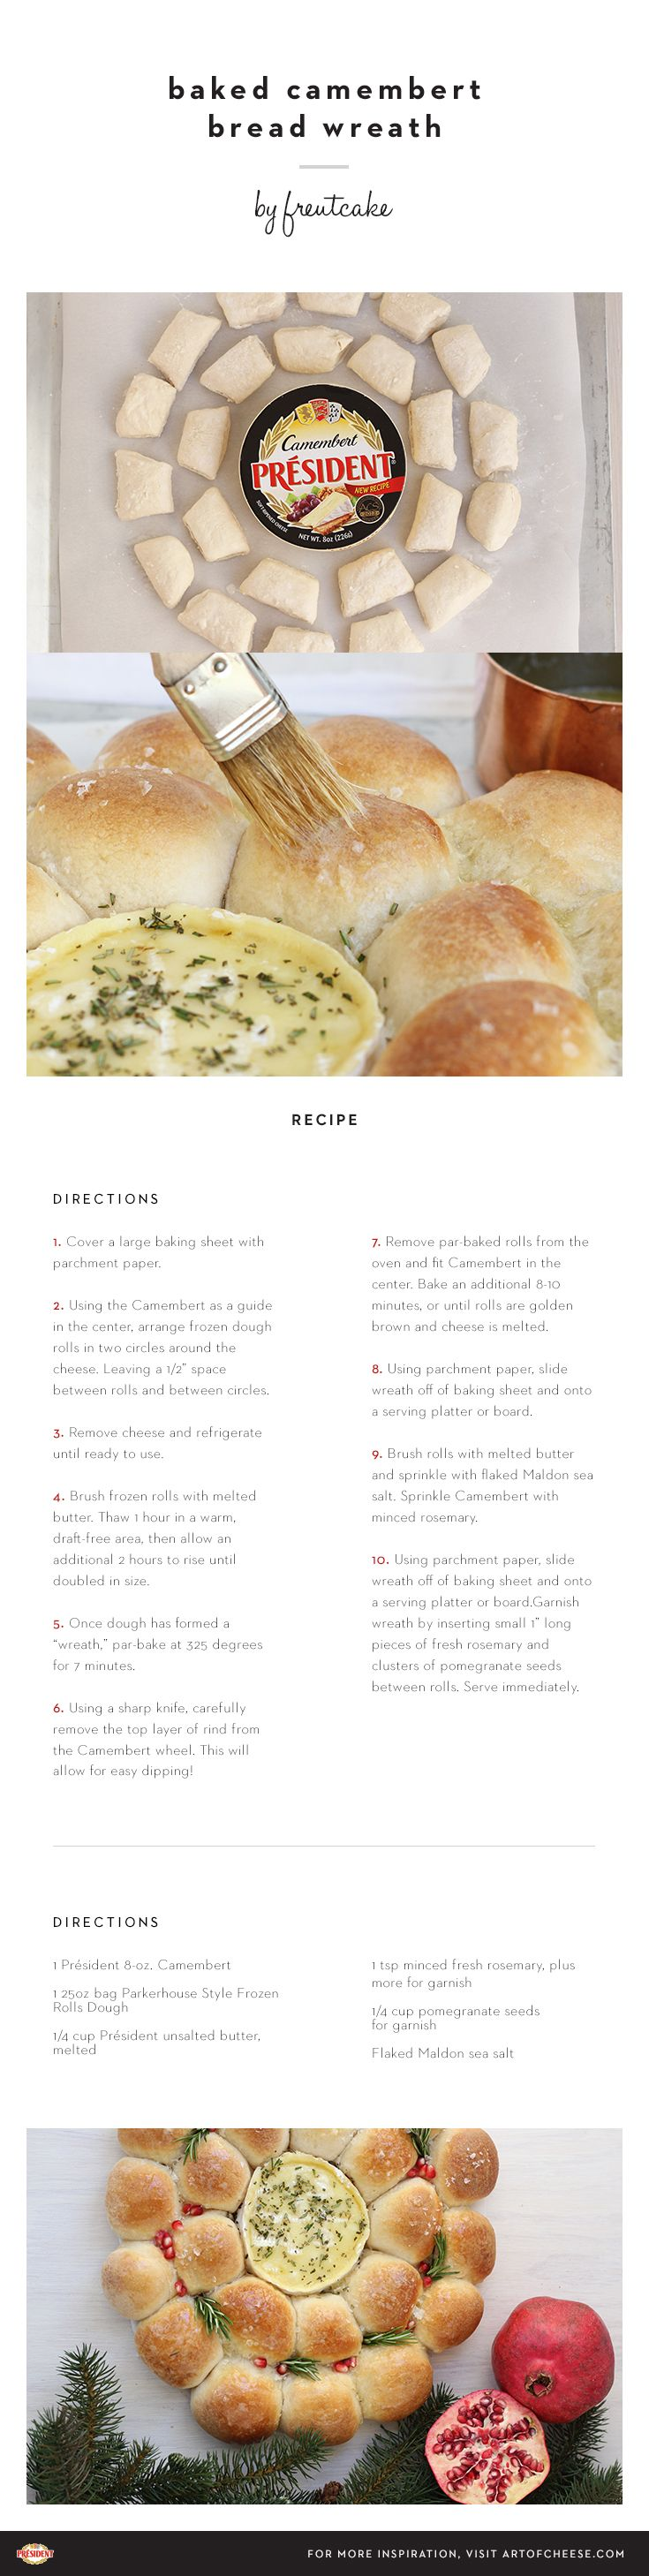 With this baked Camembert idea by @freutcake, you don't have to pick just one friend to share your fresh-baked bread wreath. #artofcheese #Camembert #cheese #appetizer #dip #holiday #Christmas